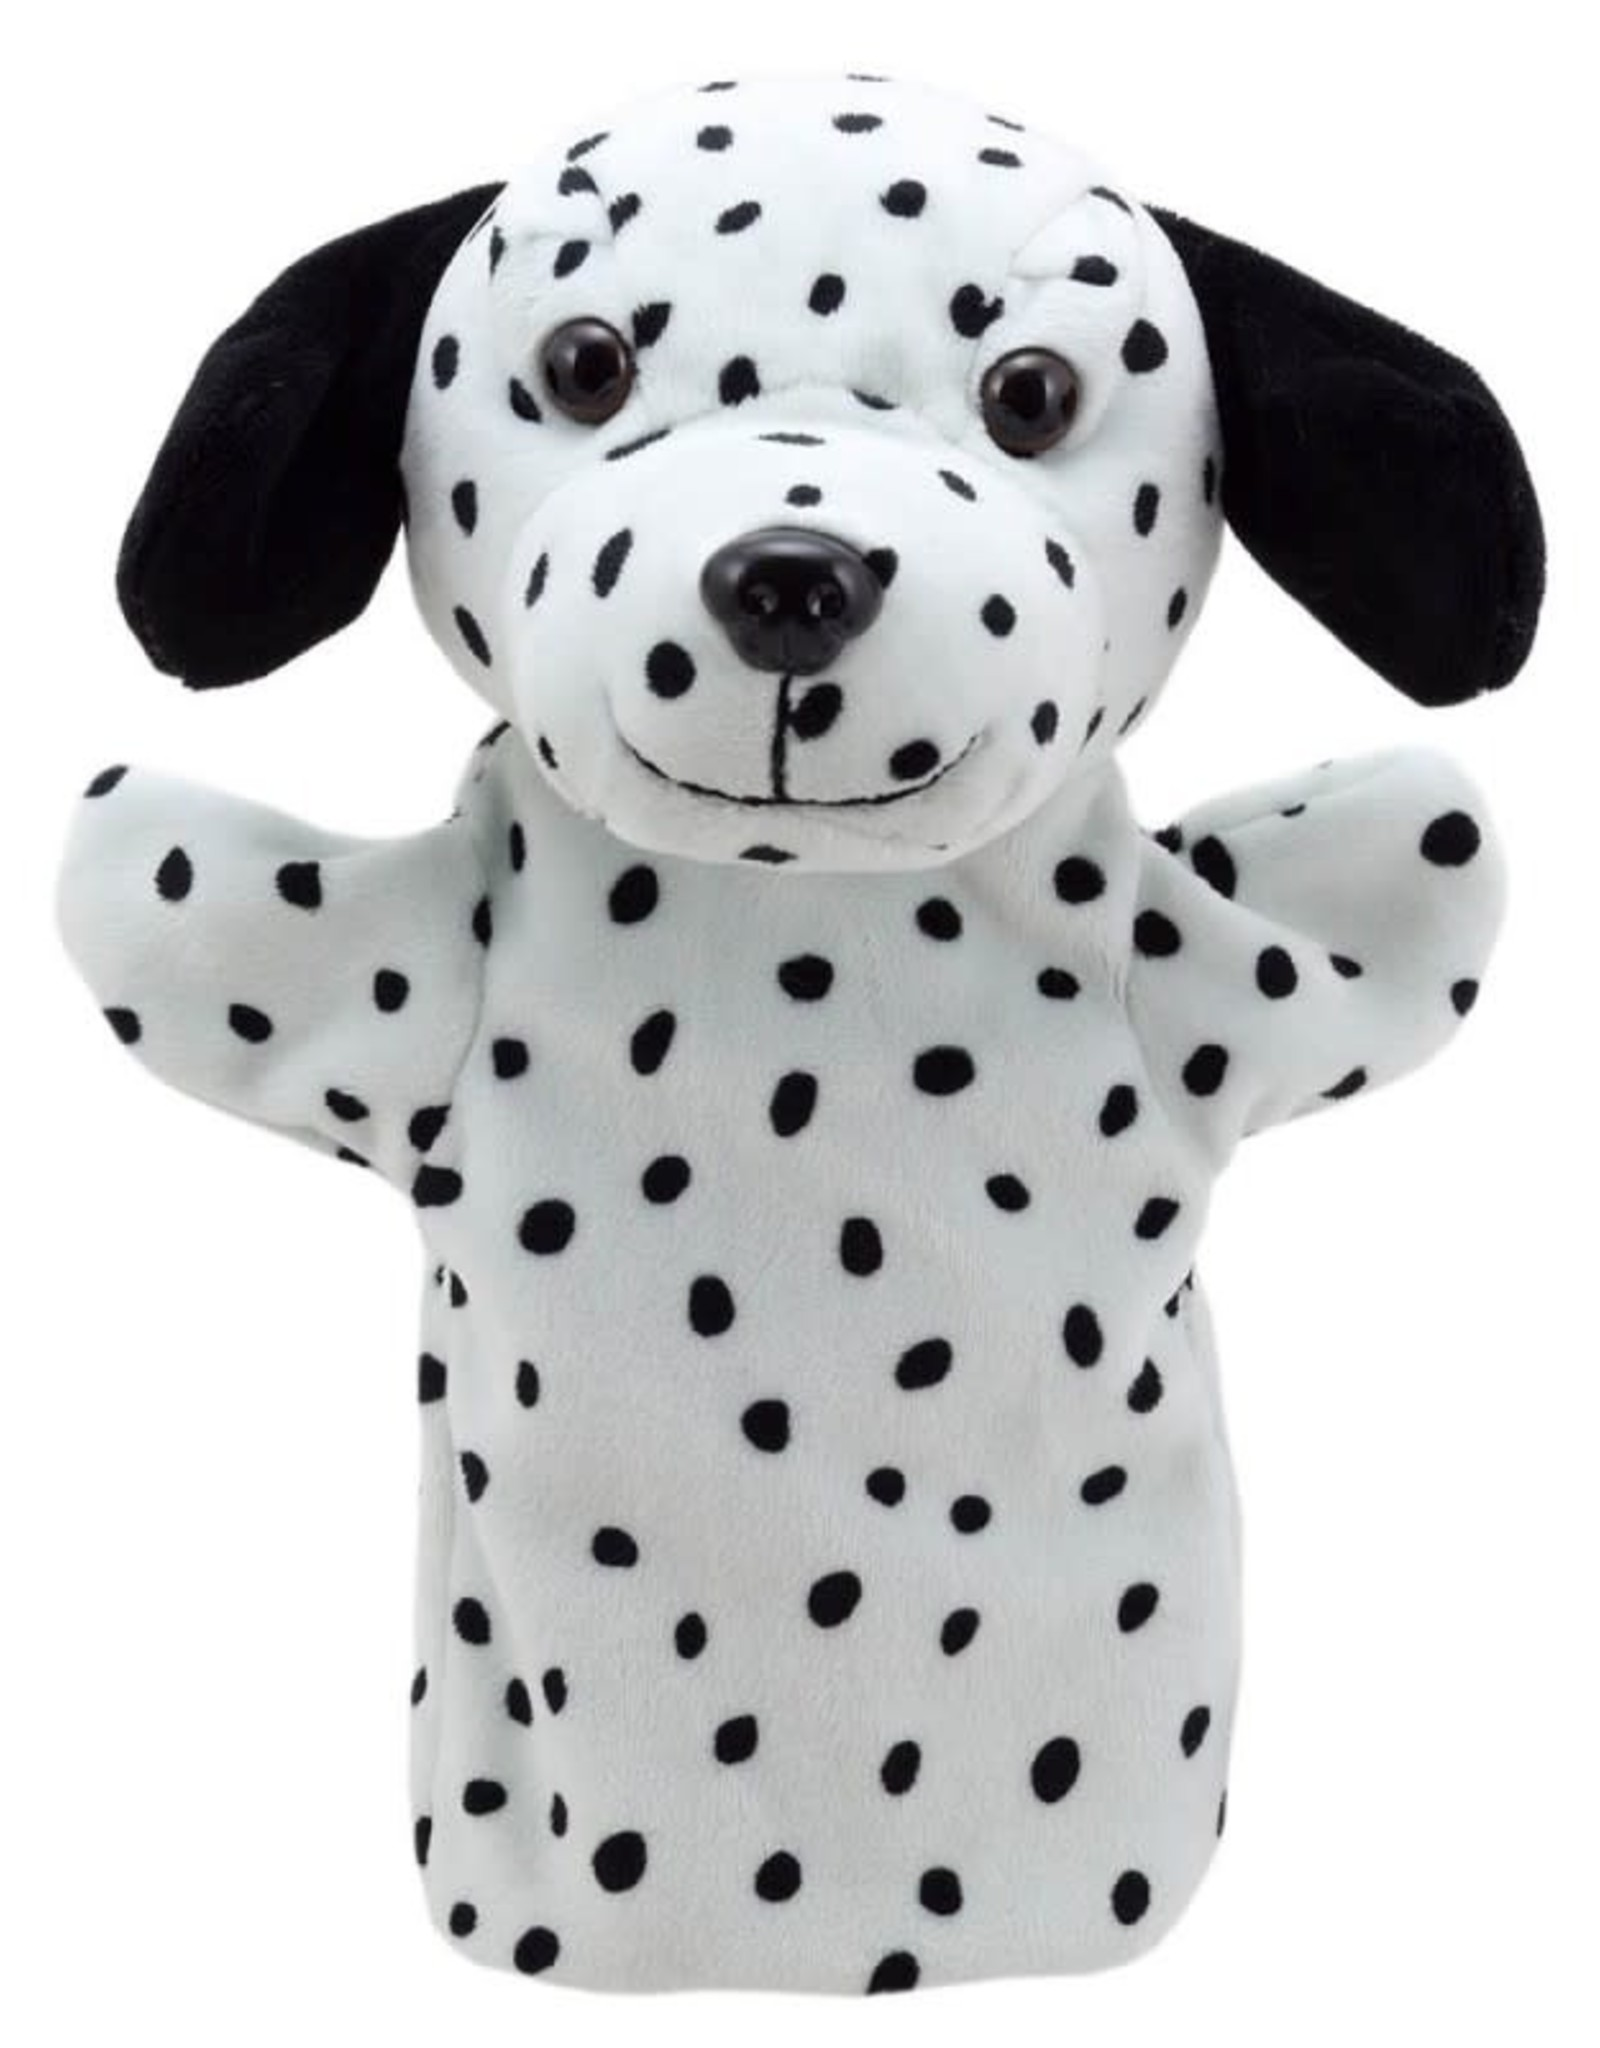 The Puppet Company Puppet Dog Dalmatian